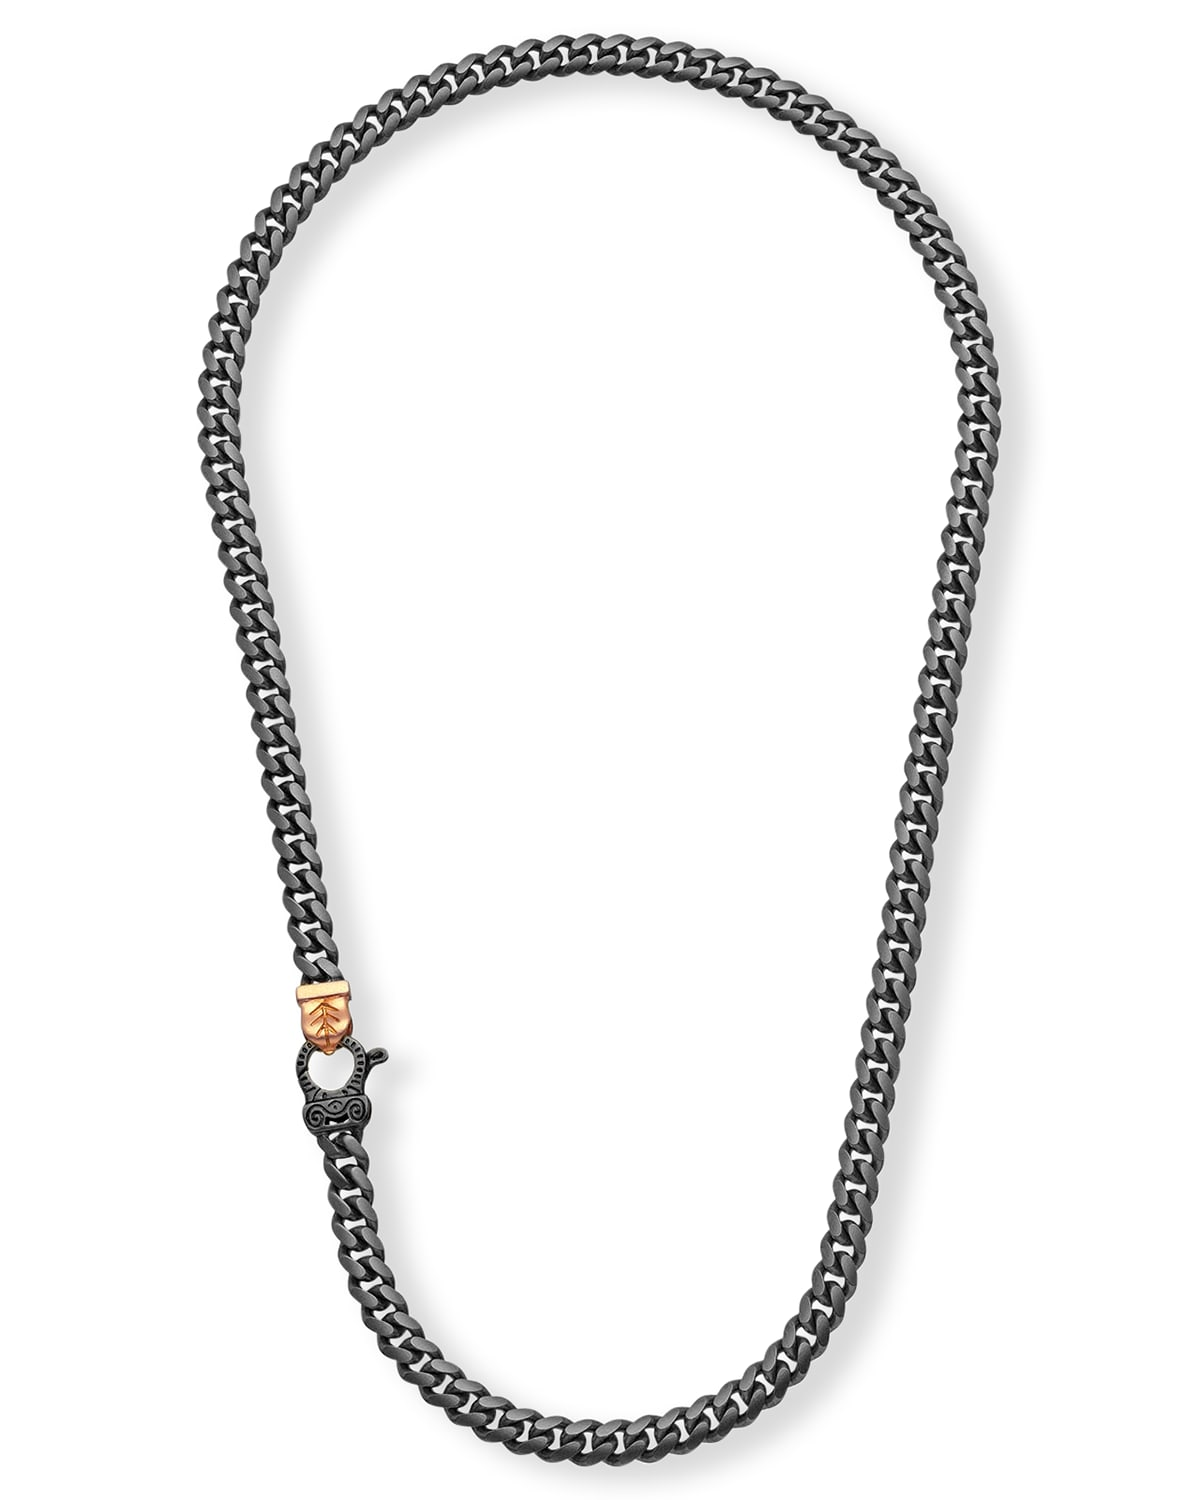 Flaming Tongue Link Necklace